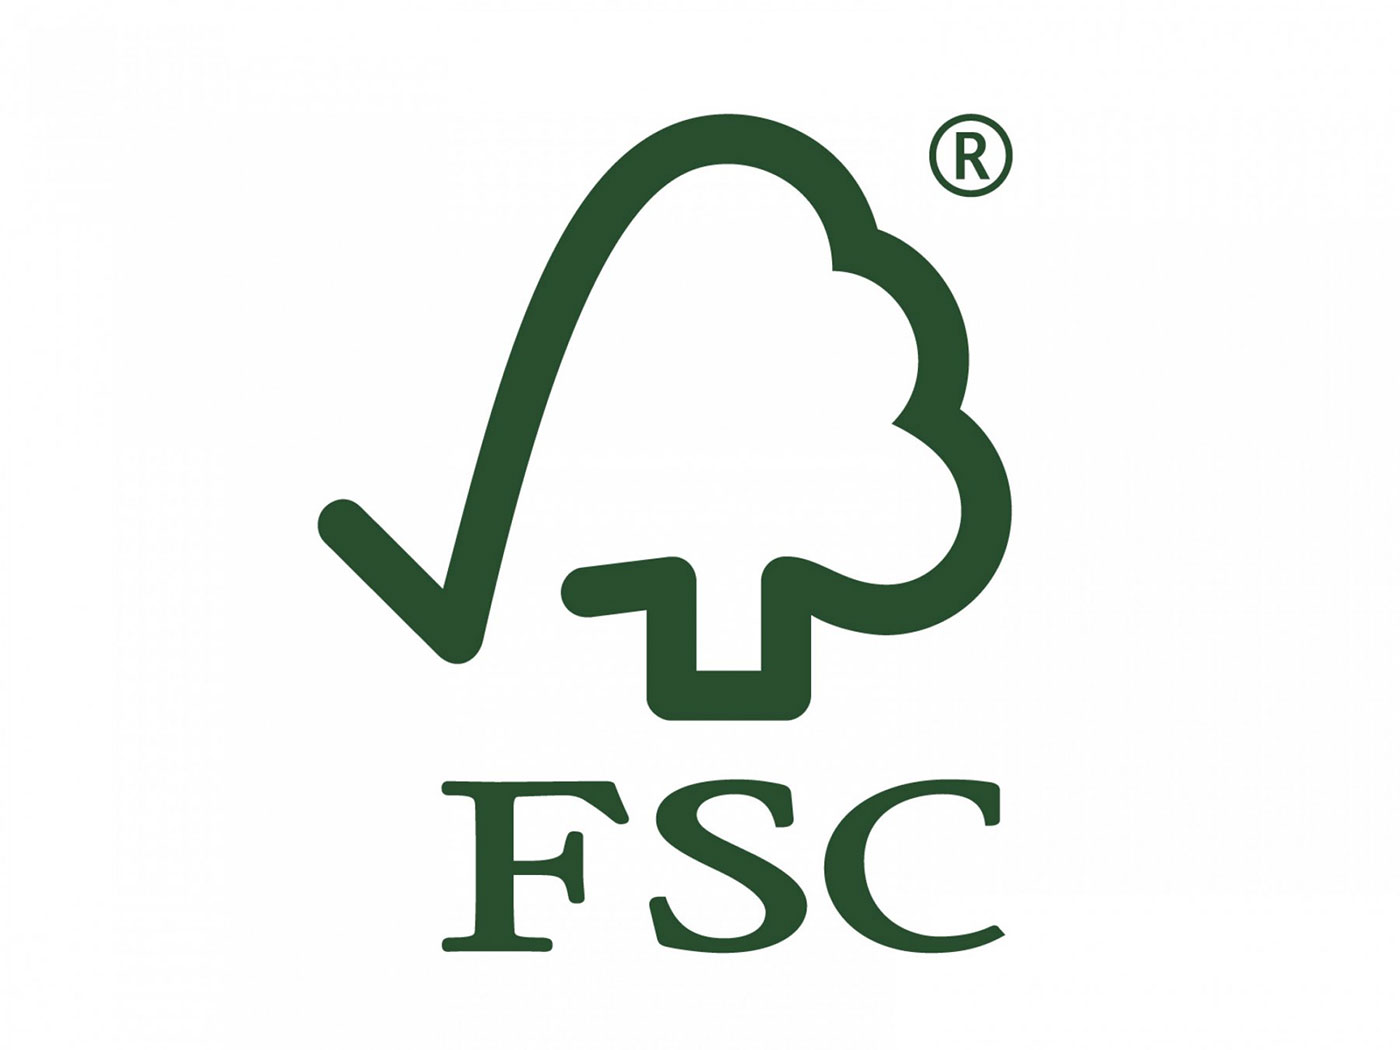 Purchasing-Cleaning and Janitorial Supplies-FSC: Forest Stewardship Council's green logo. Features an artwork of what appears to be a check-mark merged with a tree.